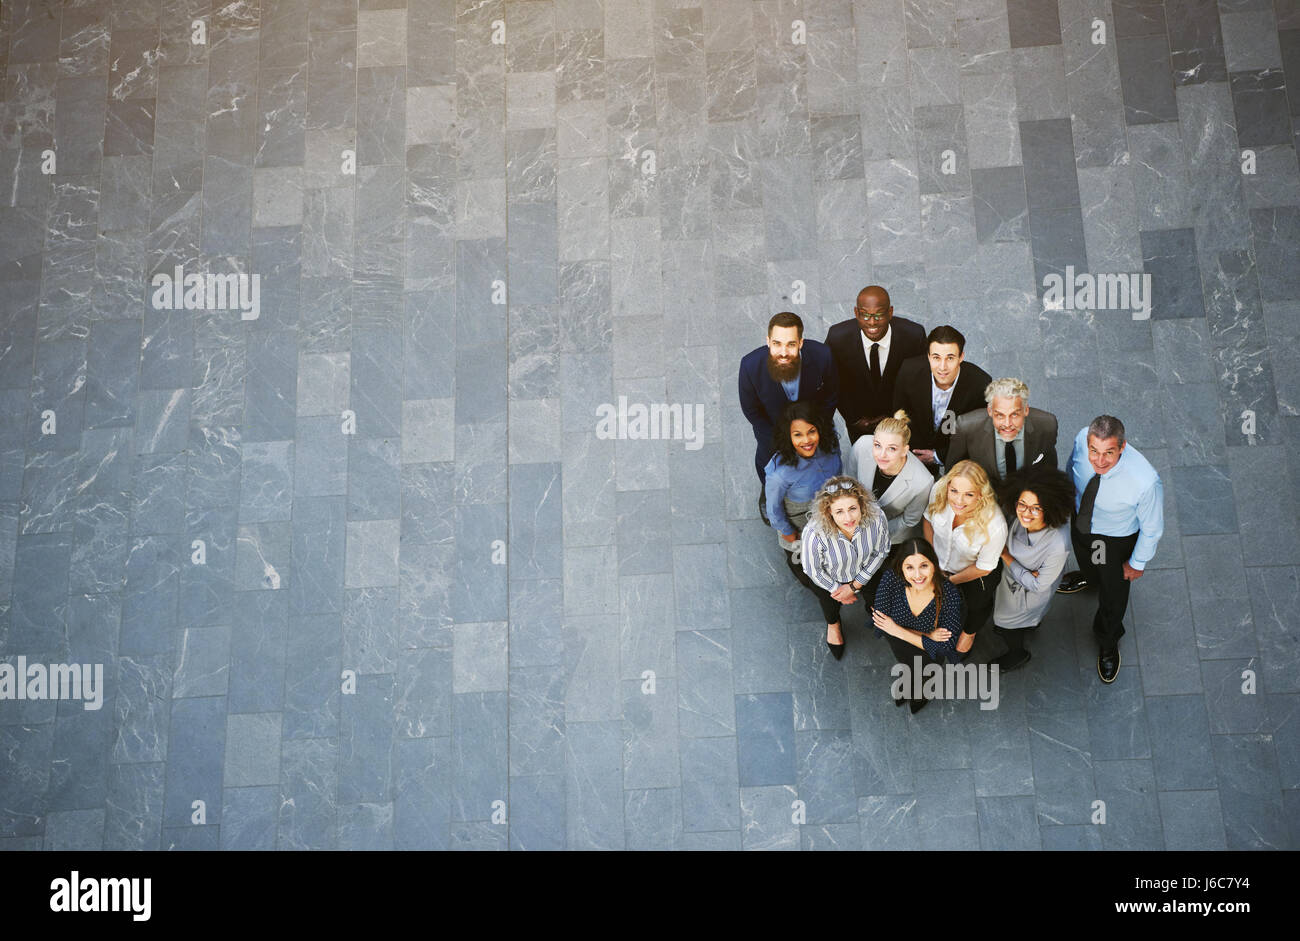 From above team of black and white men and women in formalwear standing in office hall and looking up. - Stock Image